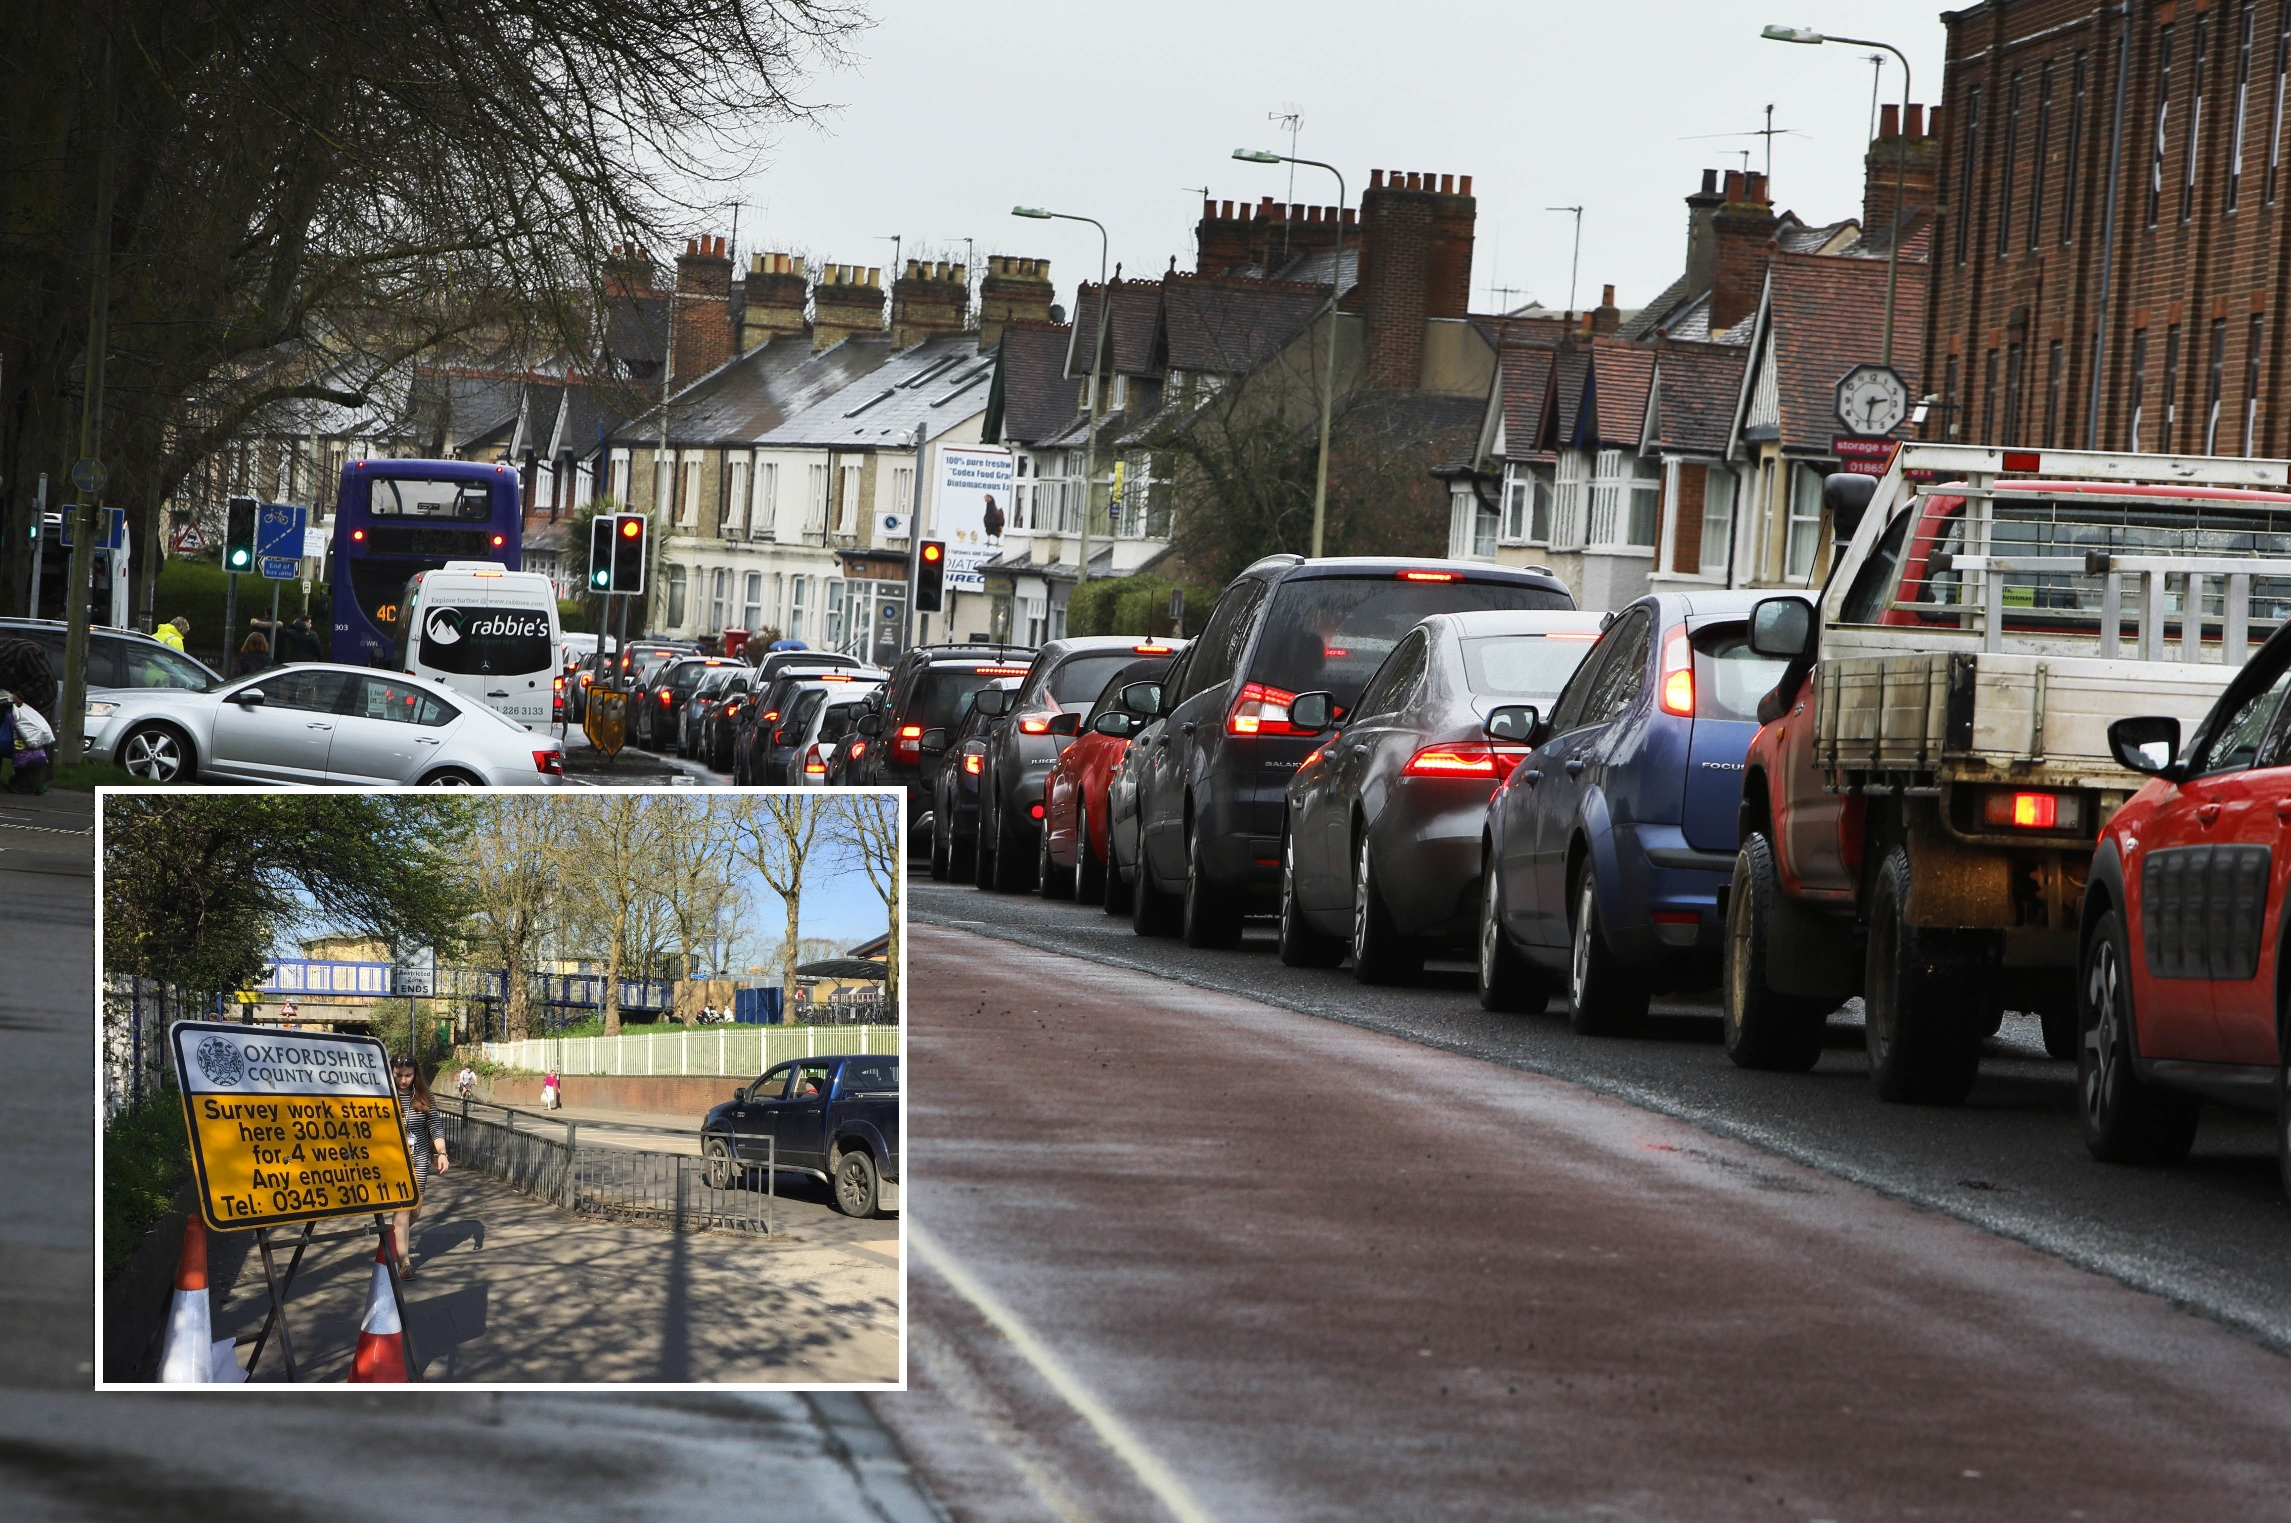 County council signs have gone up warning drivers roadworks will take place on Botley Road. Pic Tom Williams